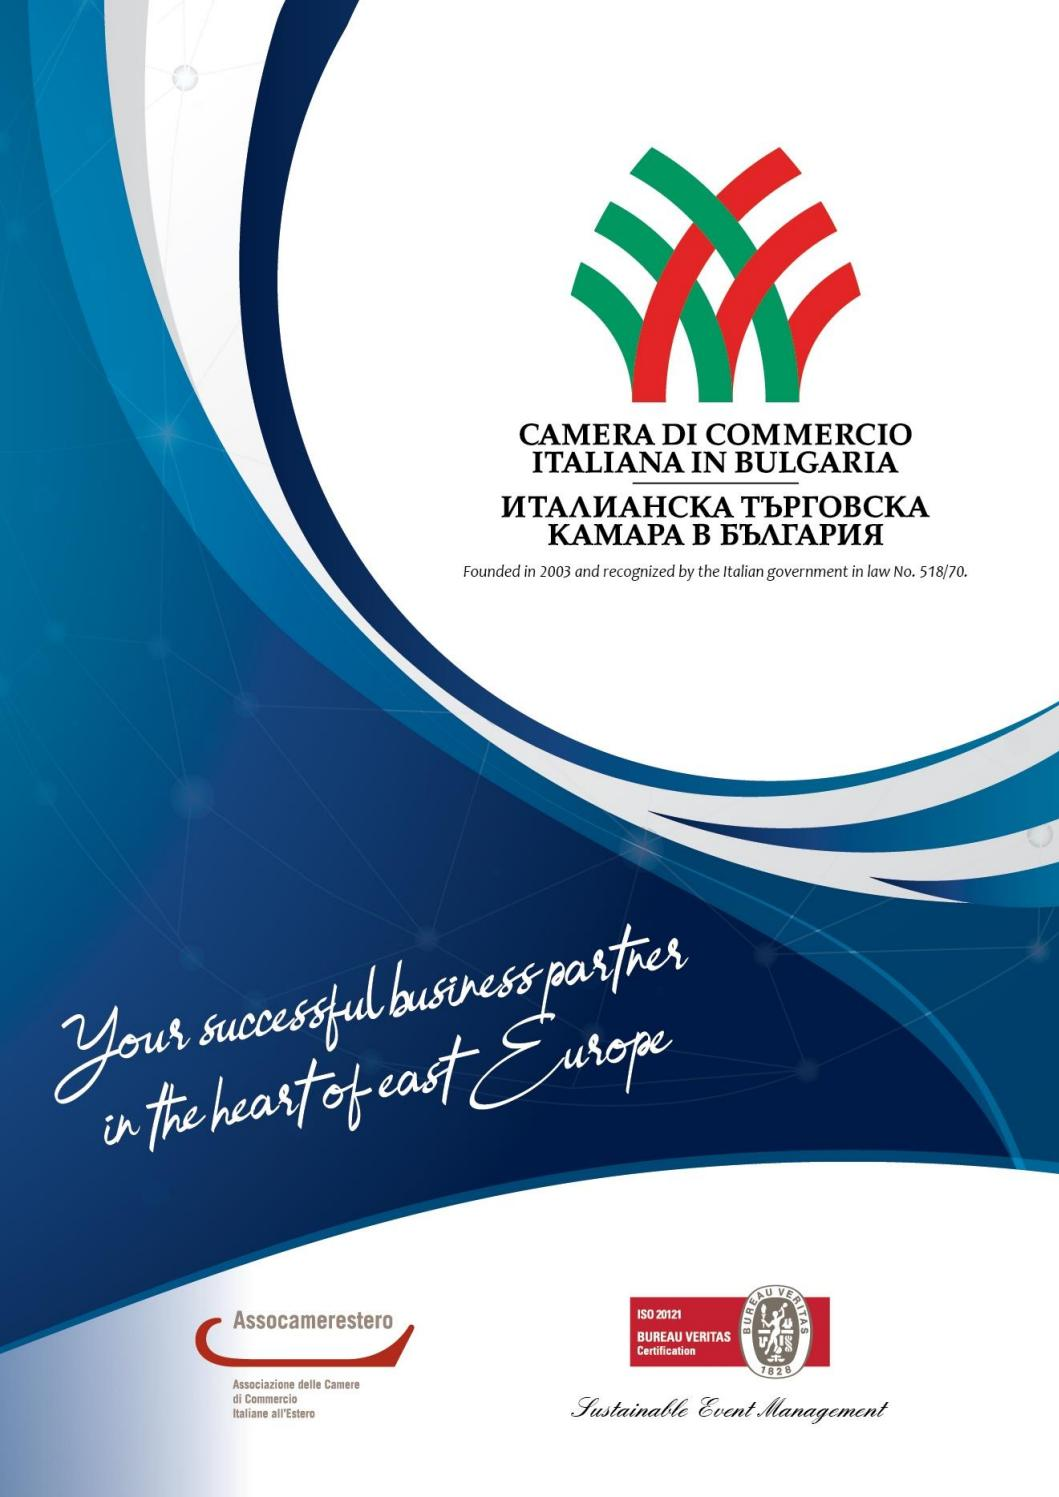 Veronafiere Calendario 2020.Calendario Attivita 2019 By Camera Di Commercio Italiana In